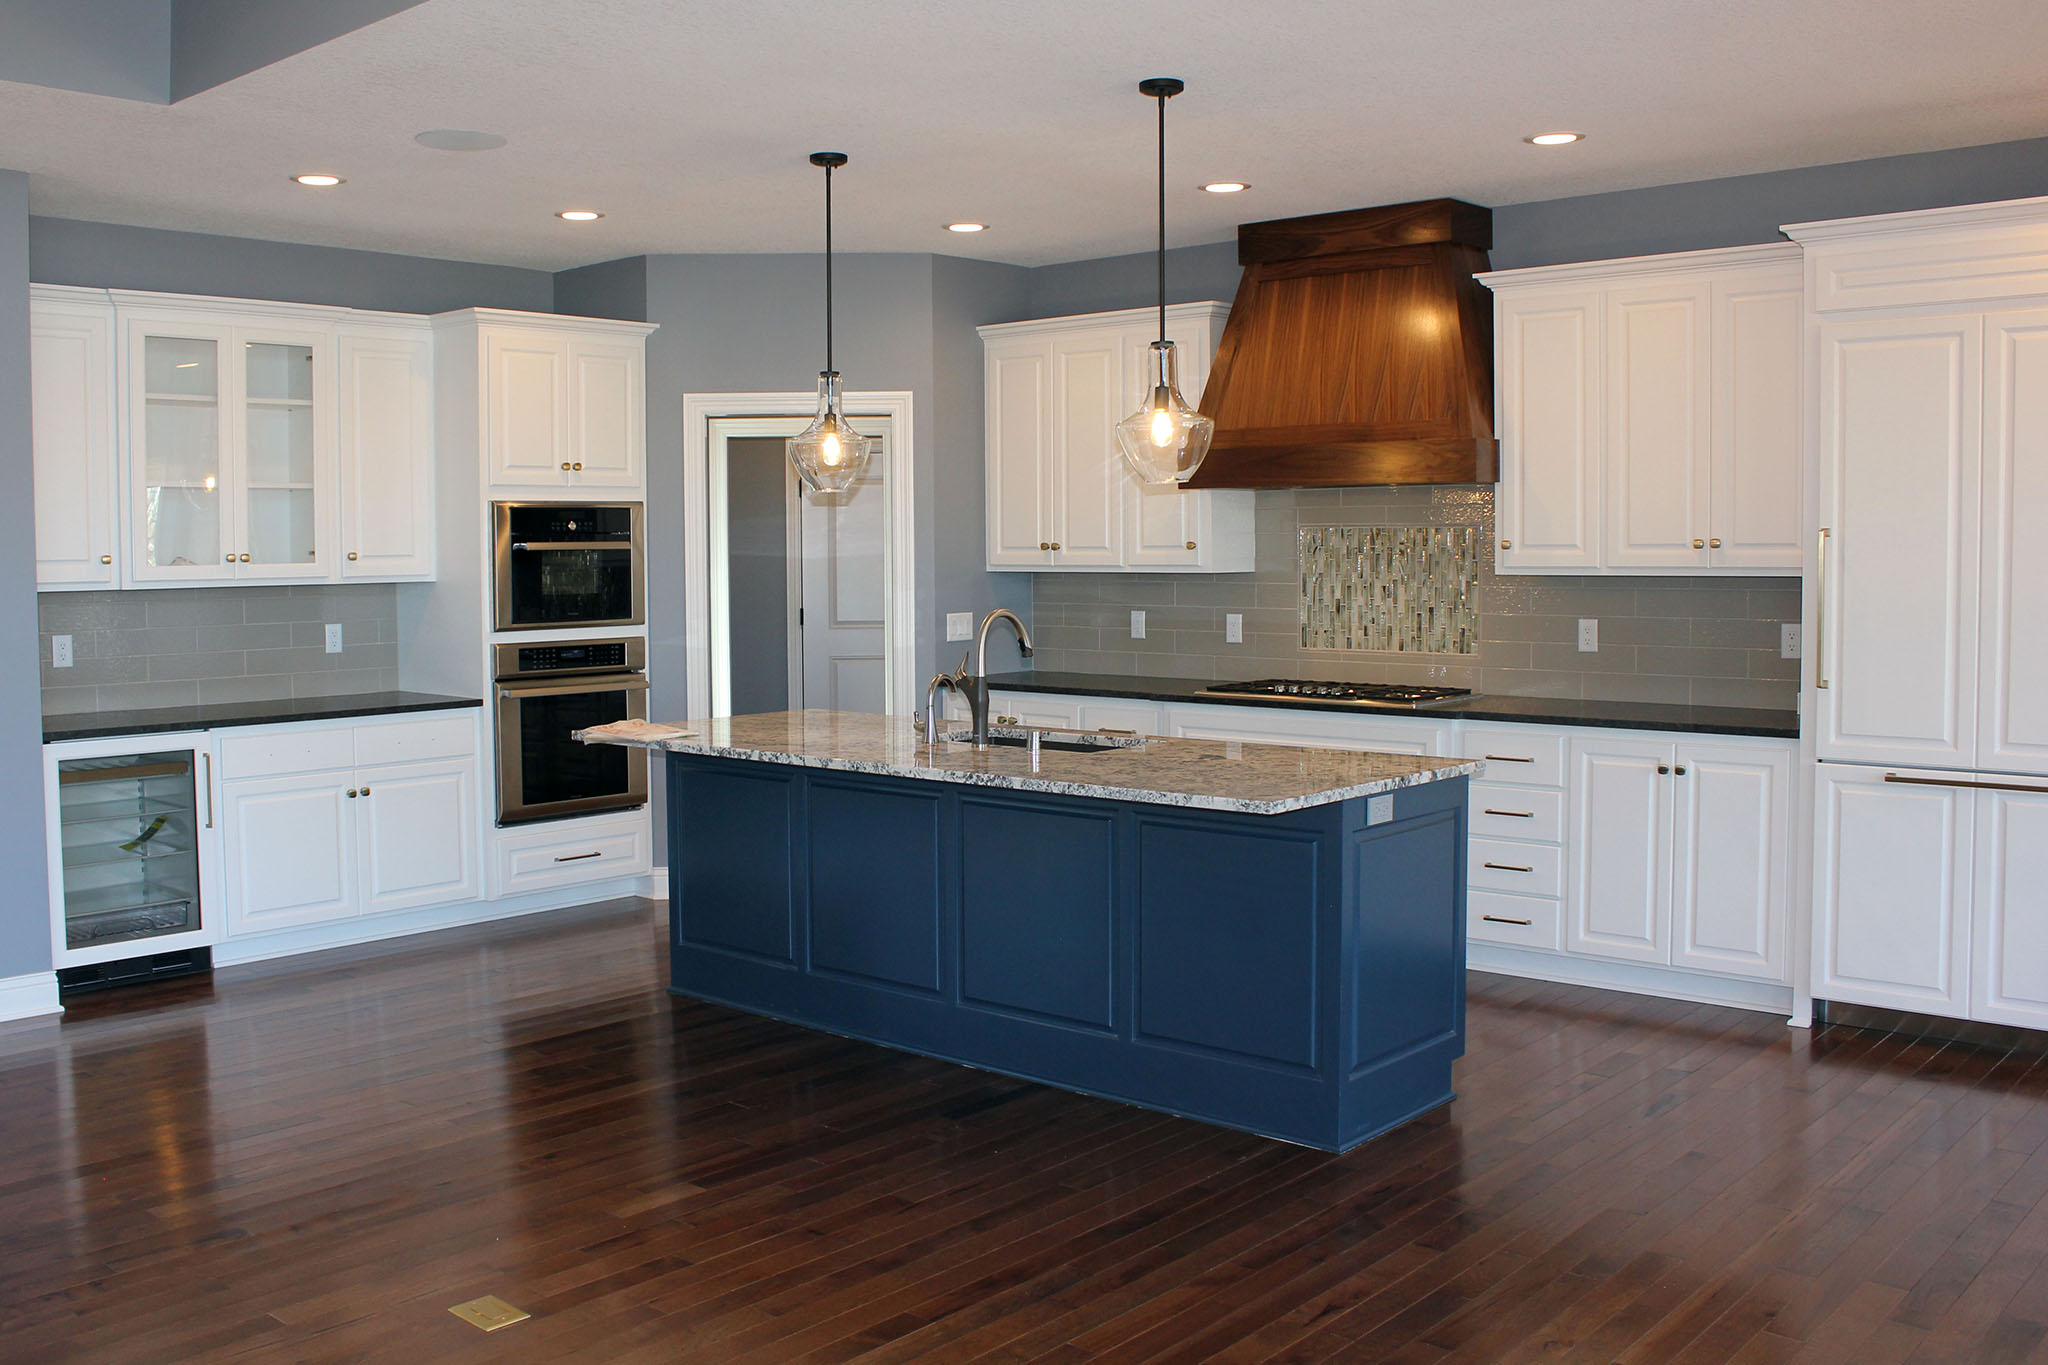 Fun white and blue two-toned kitchen with granite countertops, oven wall, wine cooler, and set-in mosaic glass backsplash